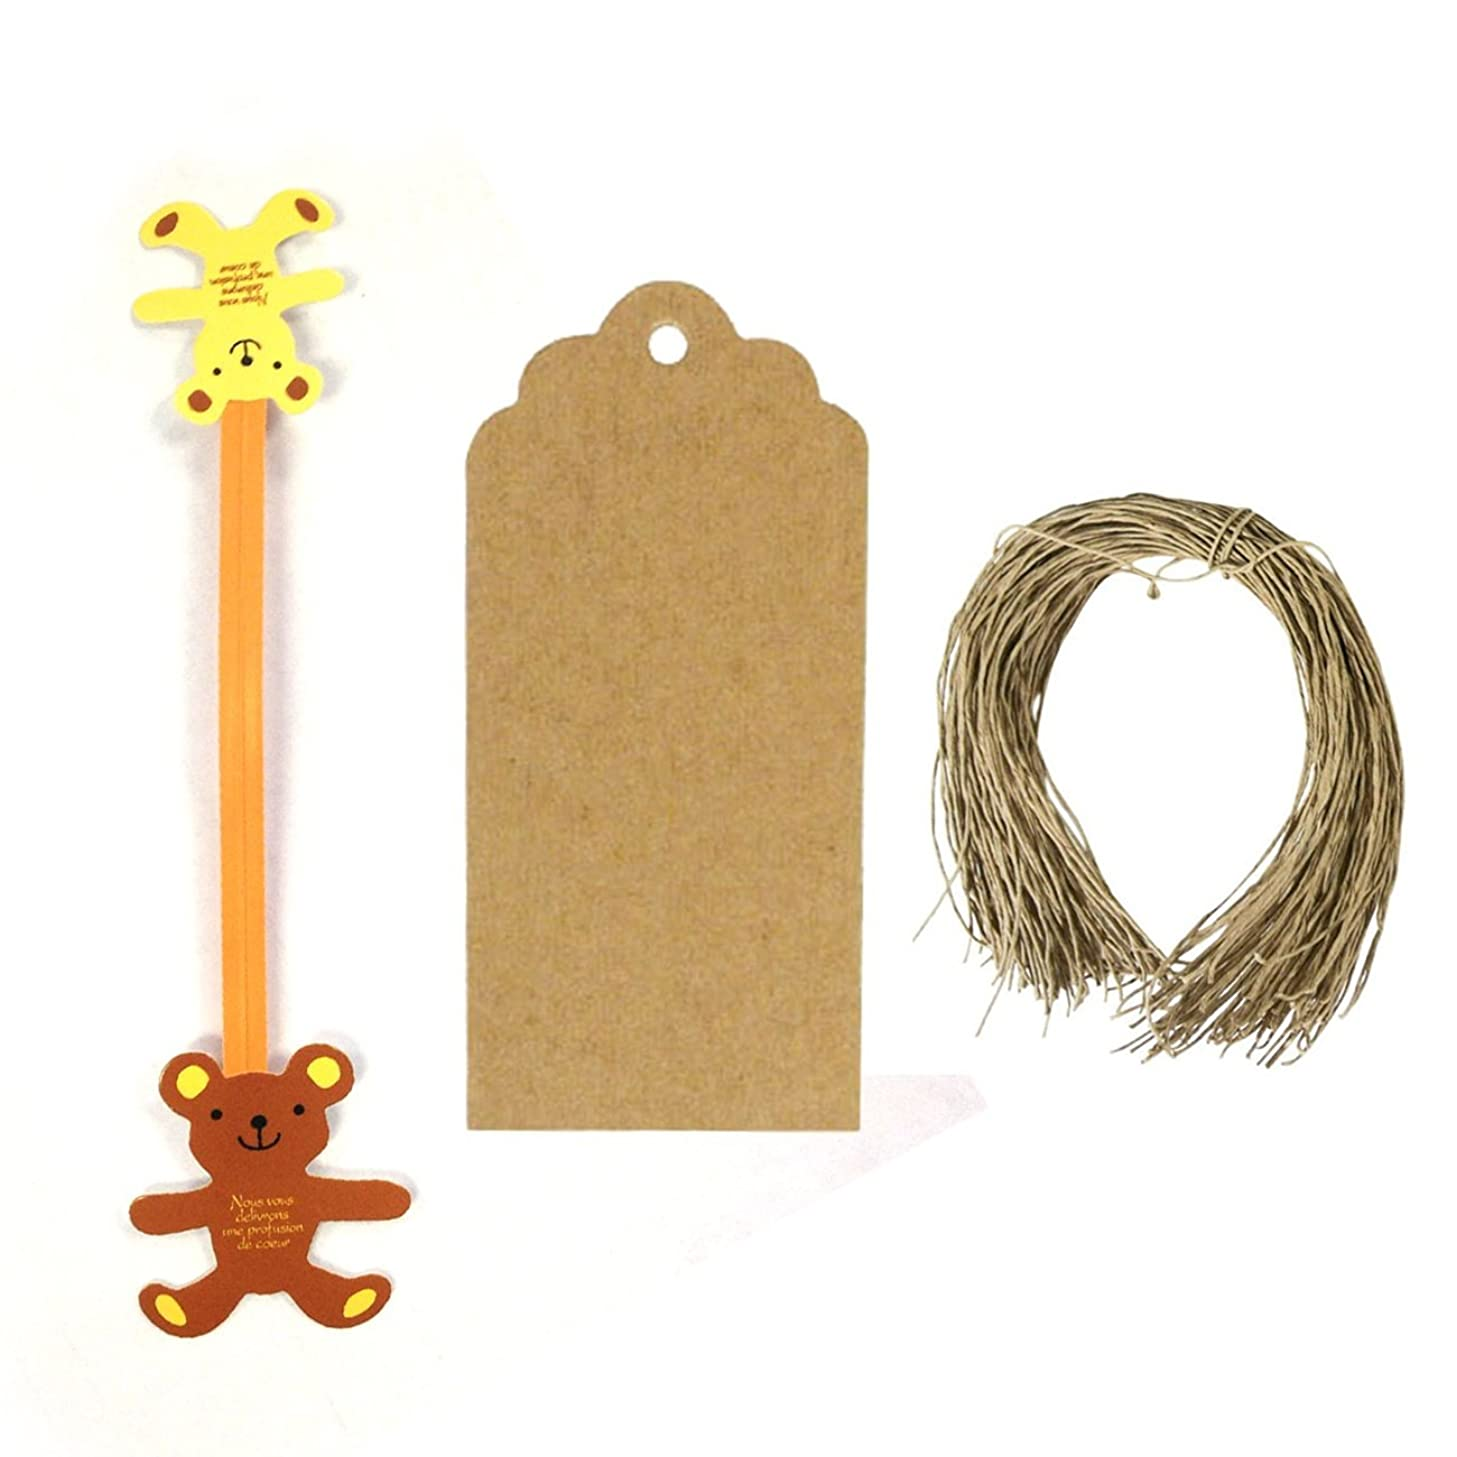 Wrapables Set of 50 Teddy Bear Twist Ties with 20 Scalloped Gift Tags for Sealing Party Favor Treat Bags and Cello Bags